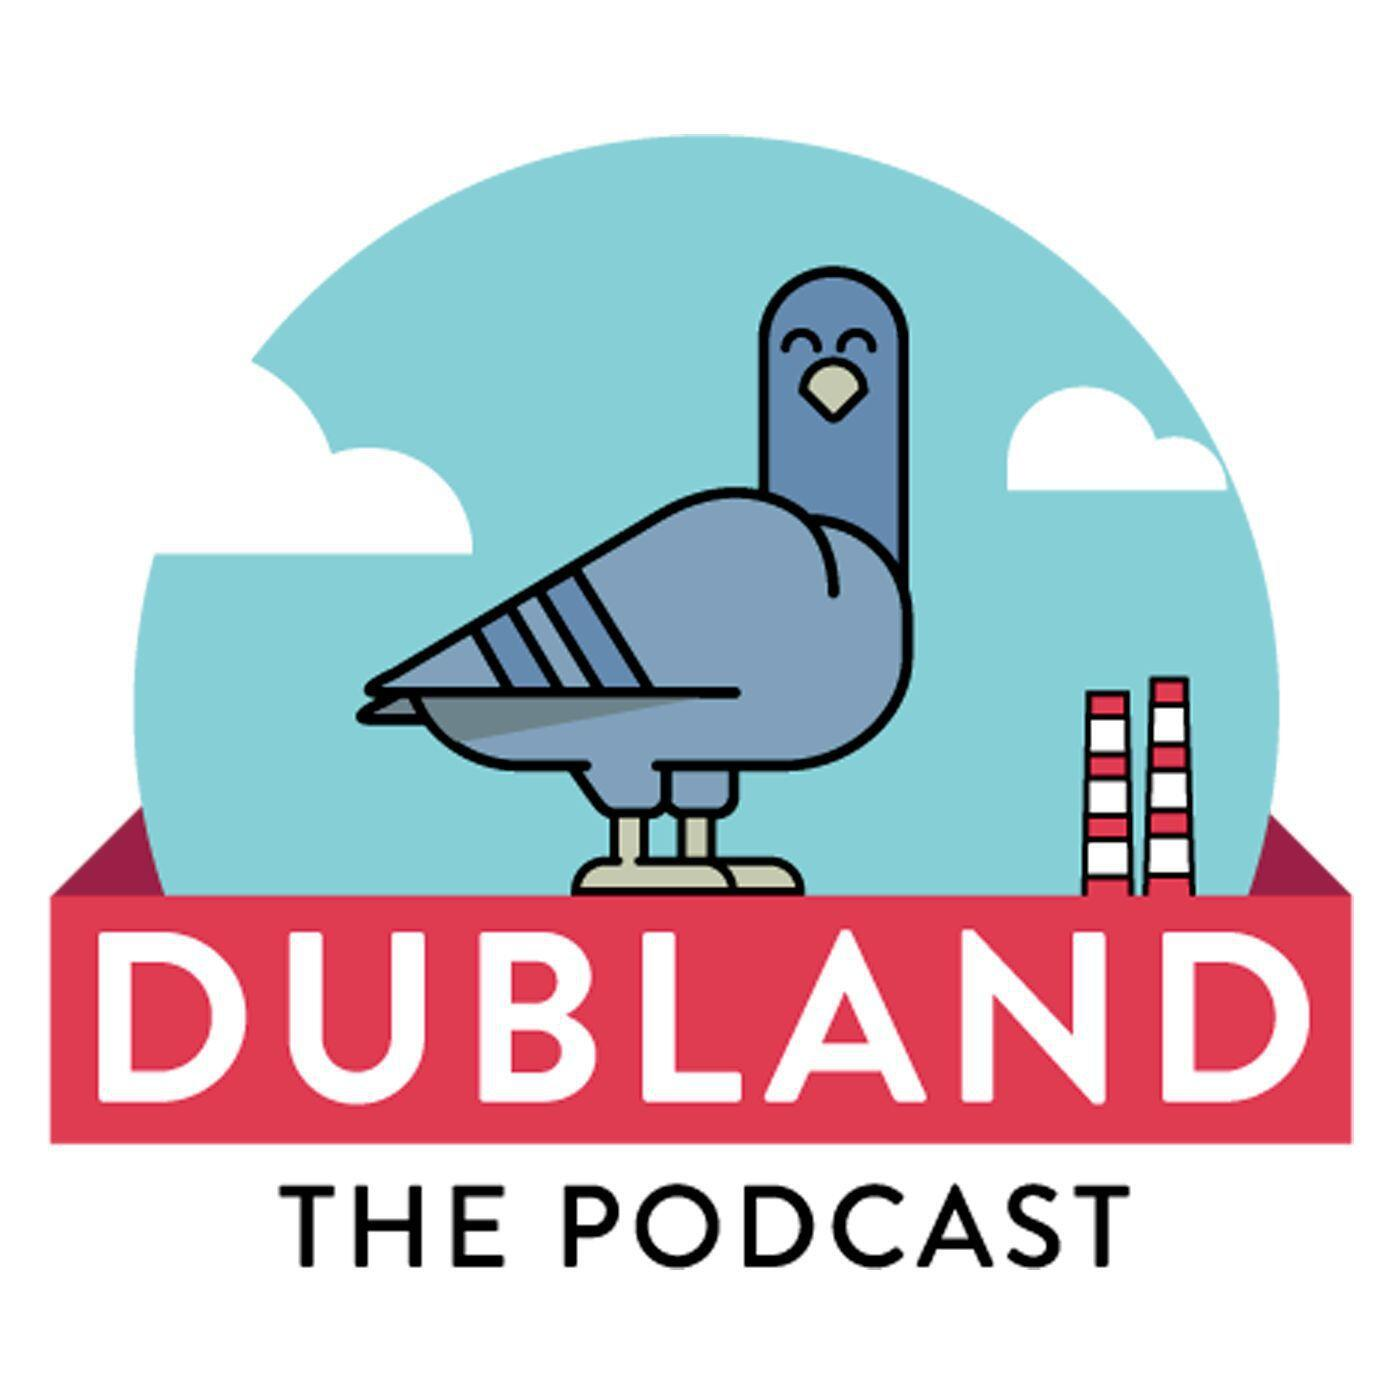 DUBLAND THE PODCAST EPISODE NINE